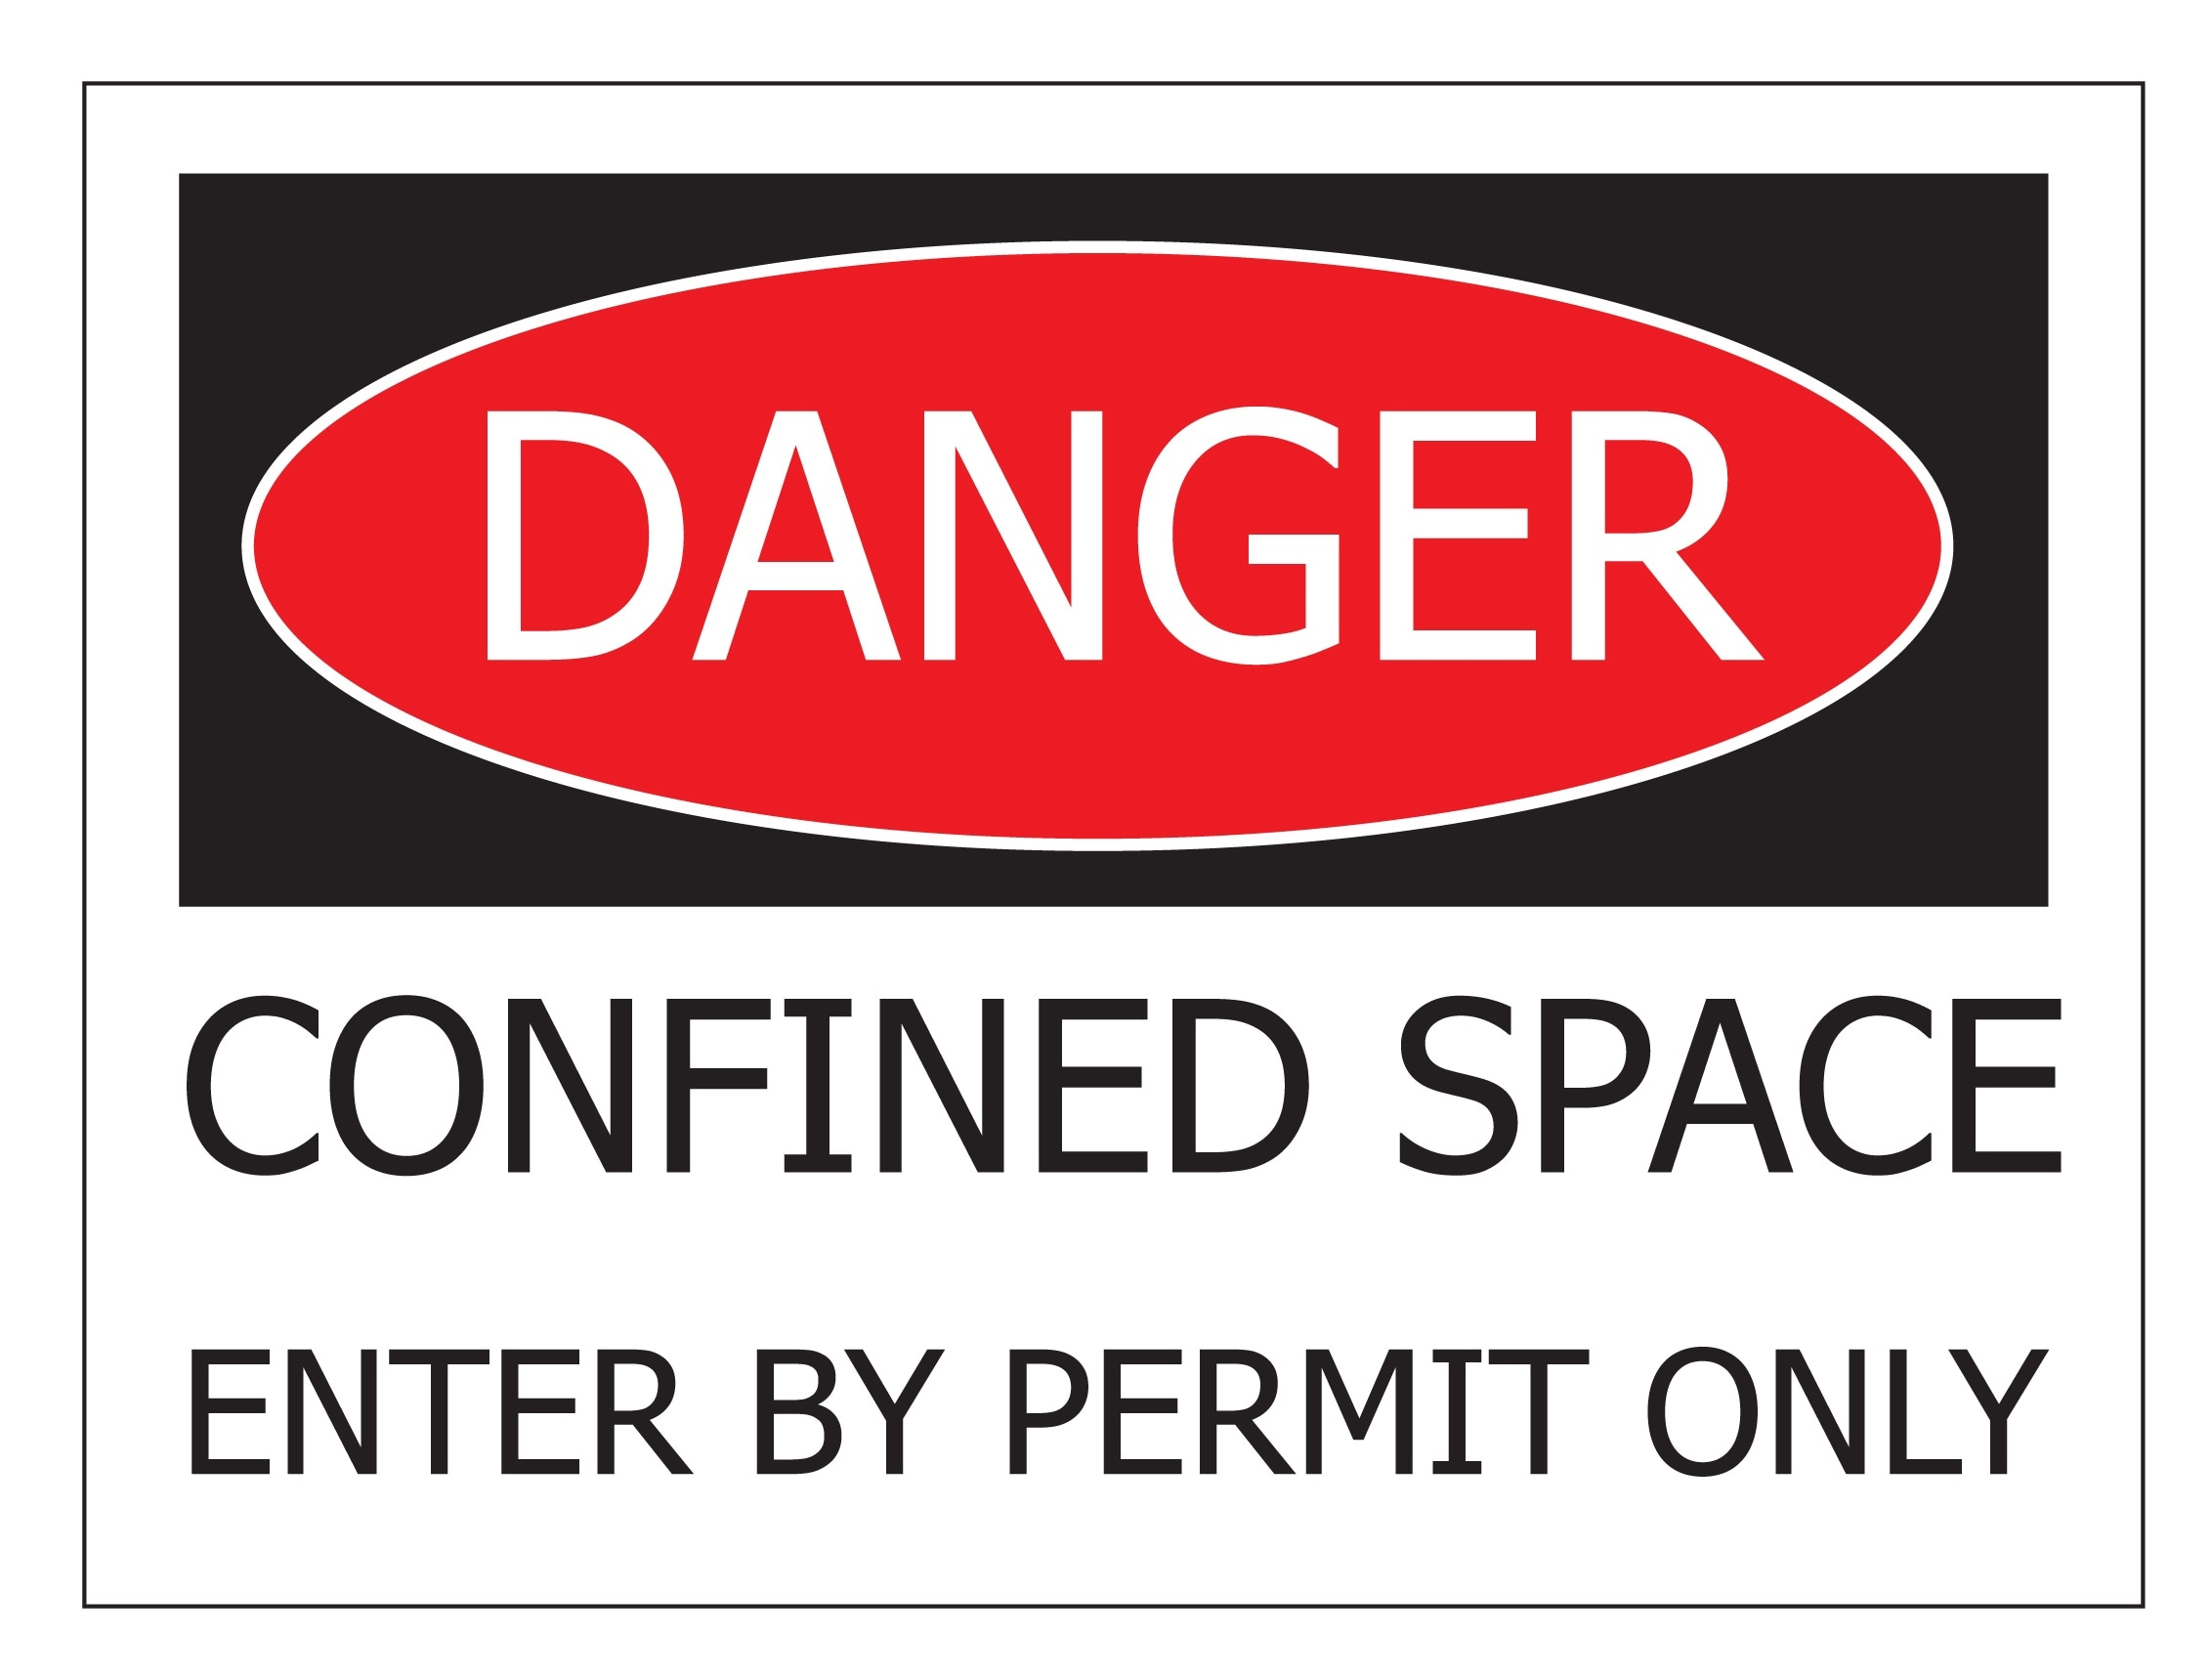 Danger confined space.